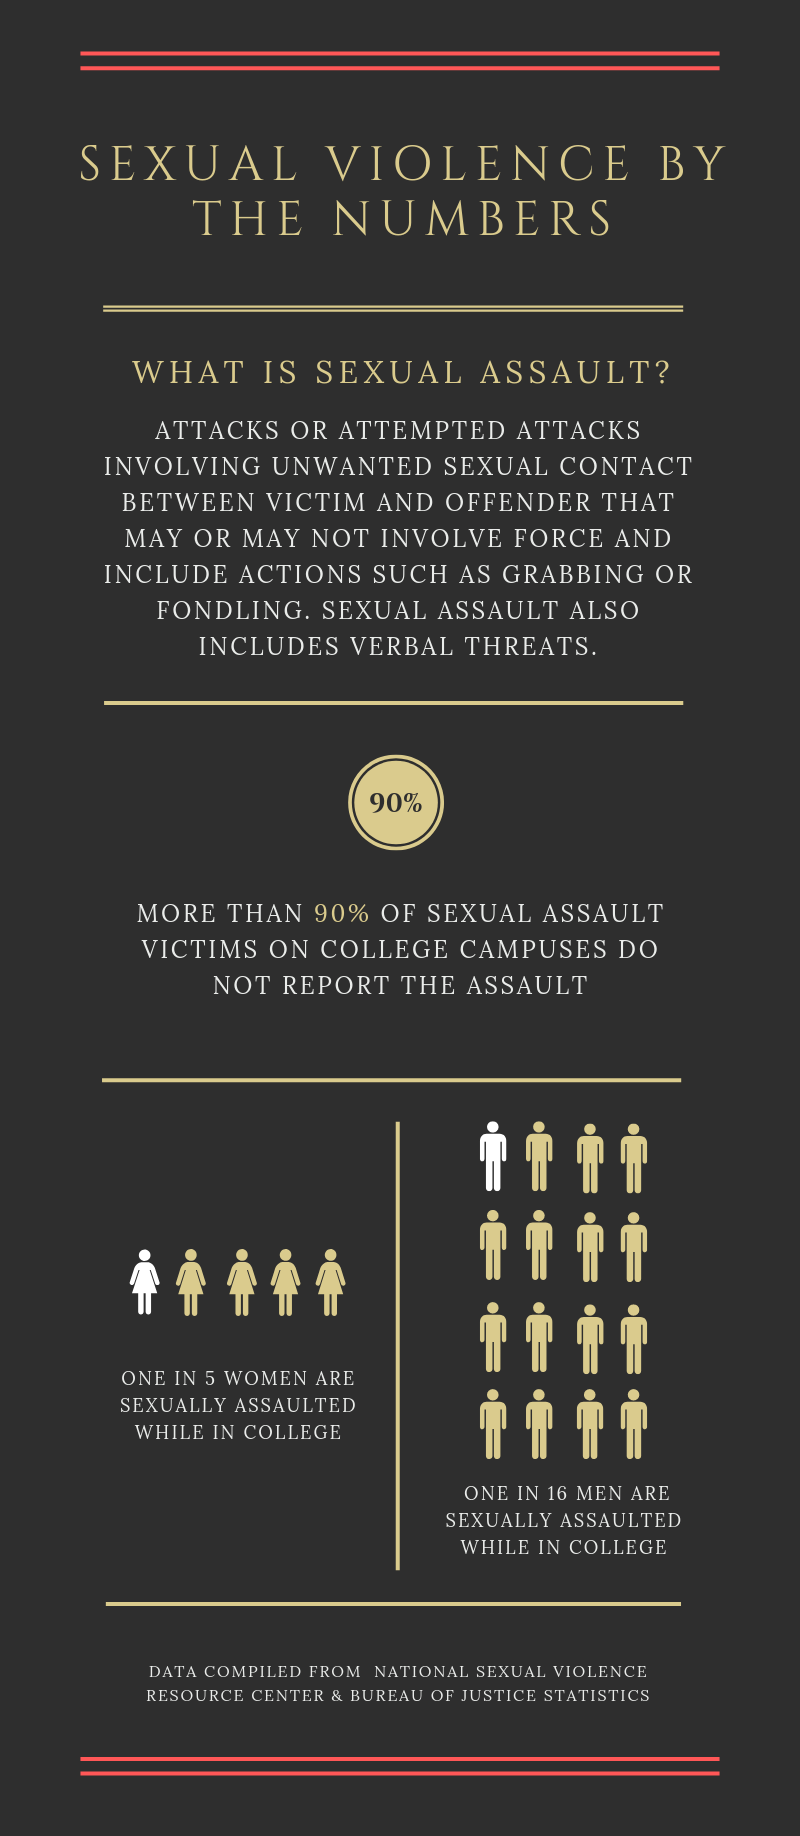 Sexual violence by the numbers